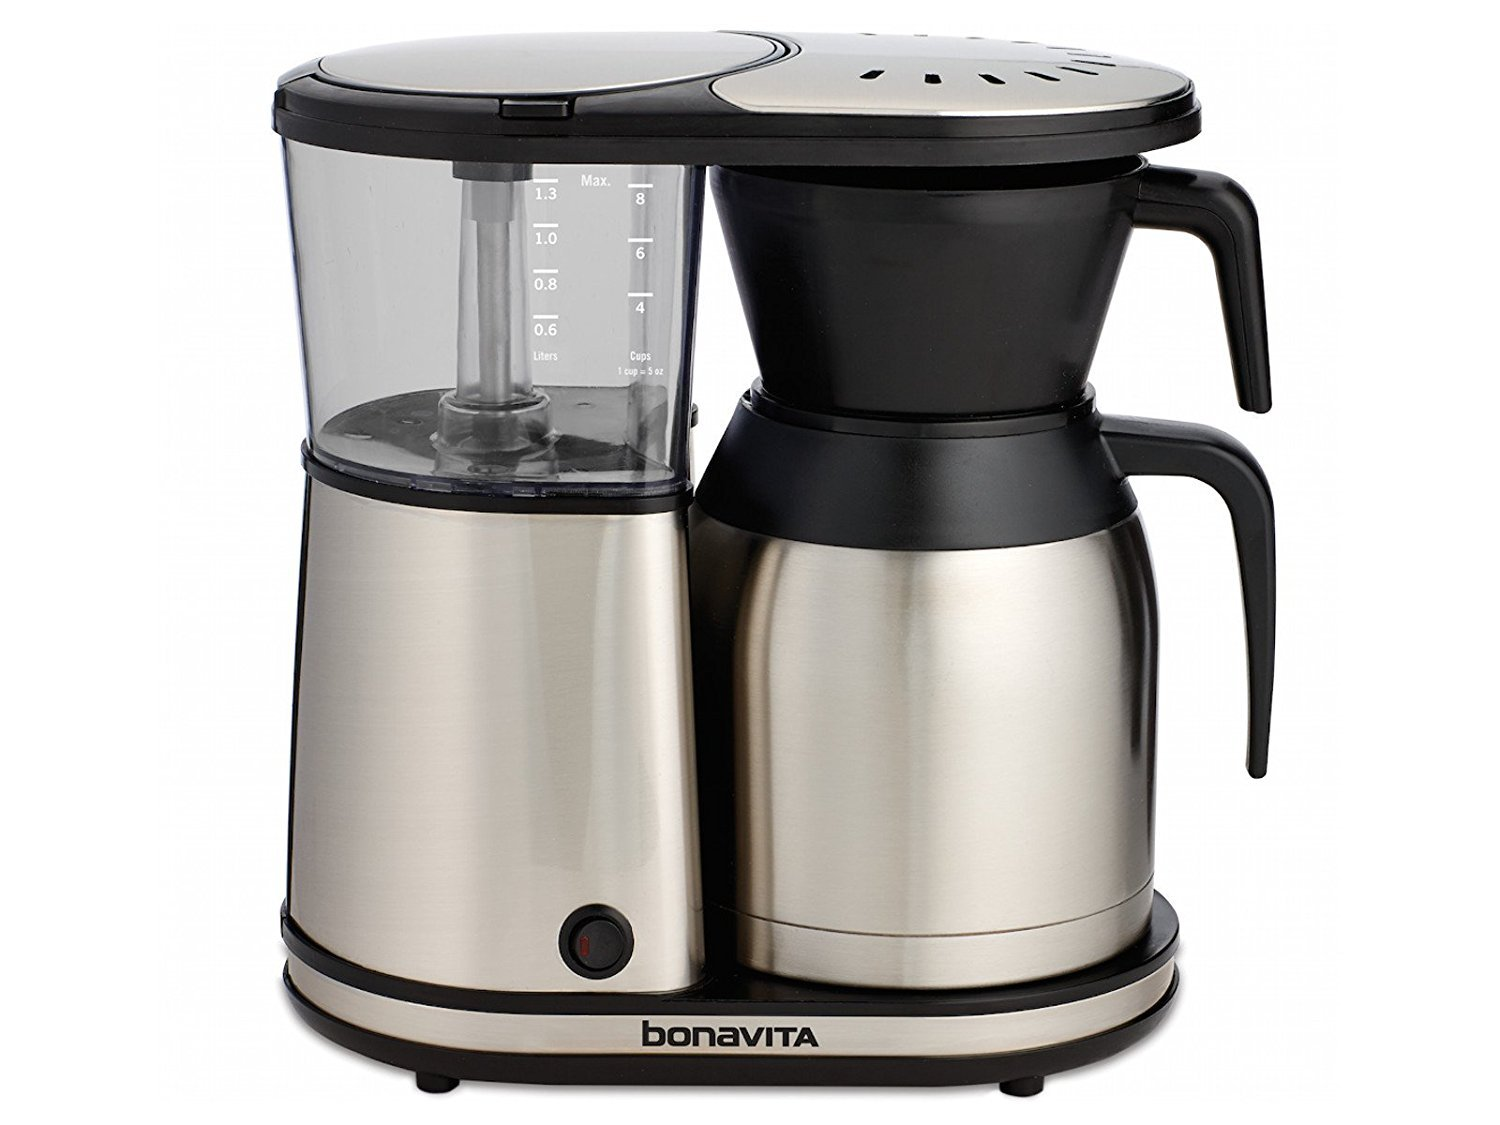 Bonavita BV1900TS Coffee Maker 8 cup